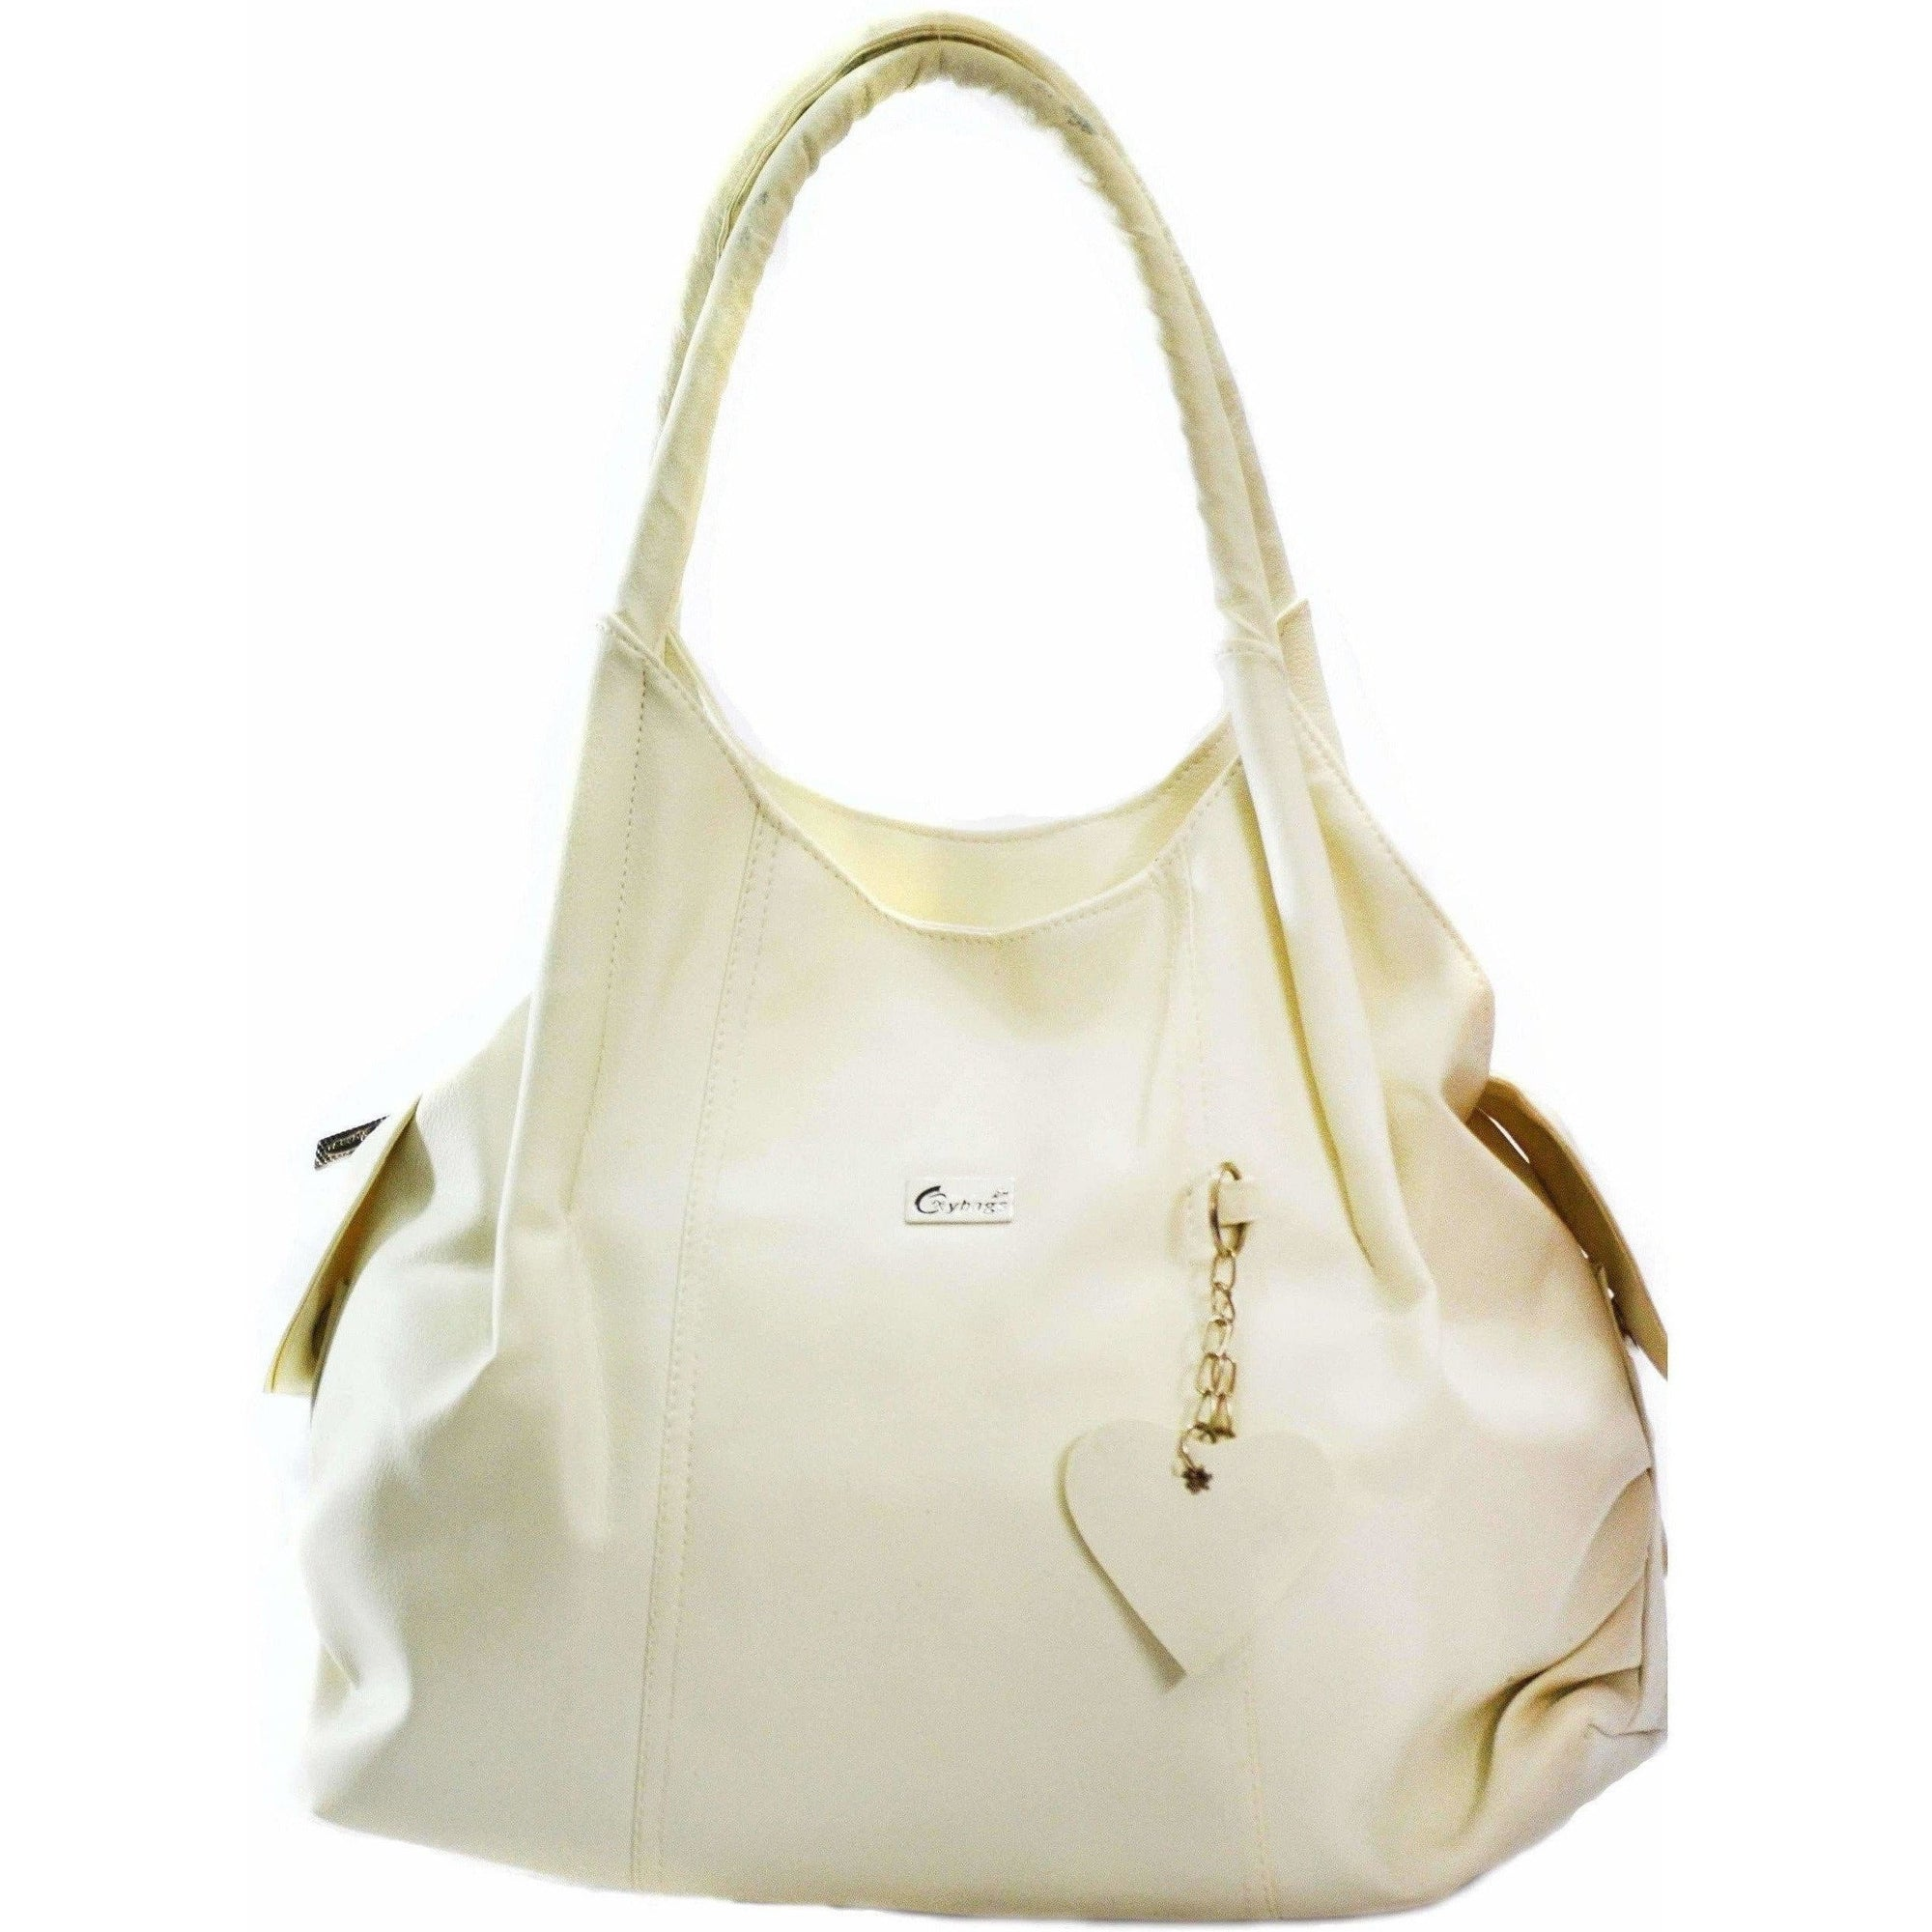 Half White Hand-Held Bag